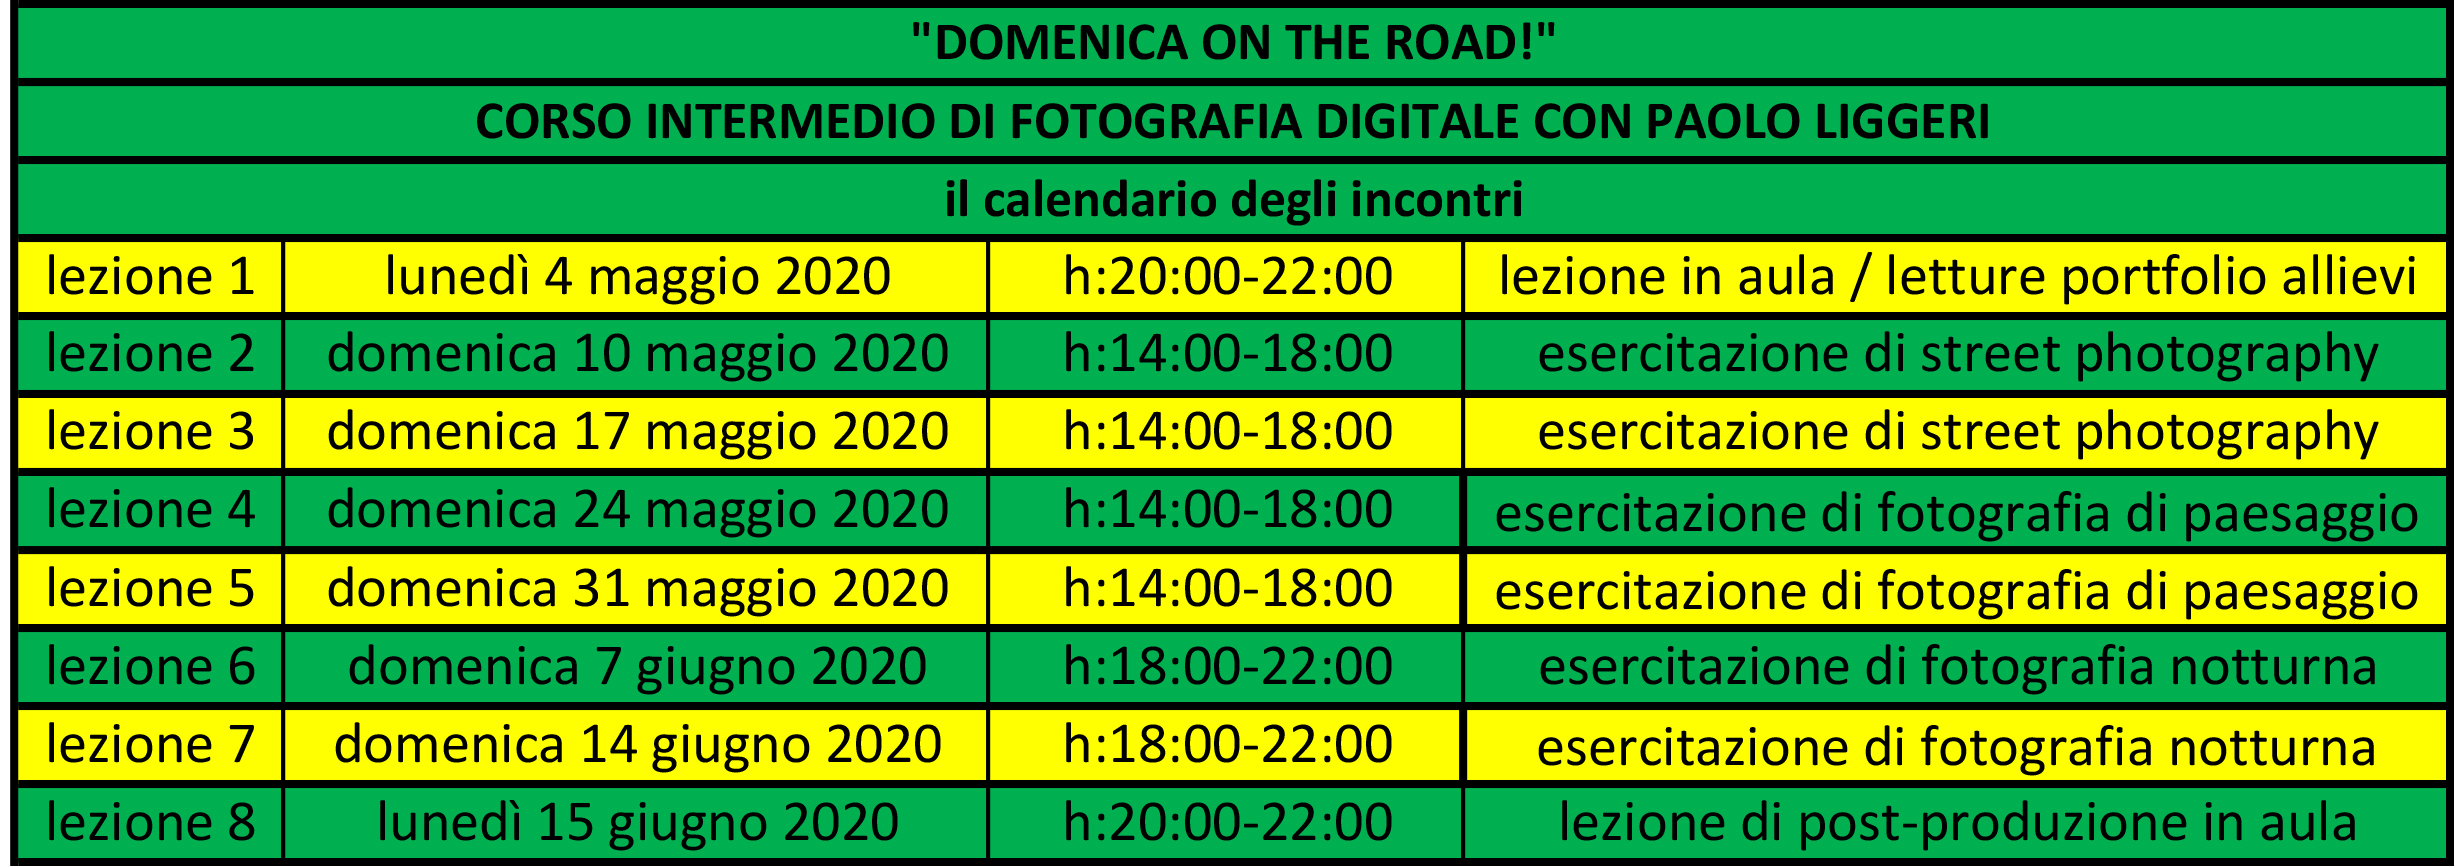 "calendario incontri corso intermedio di fotografia ""DOMENICA ON THE ROAD"""